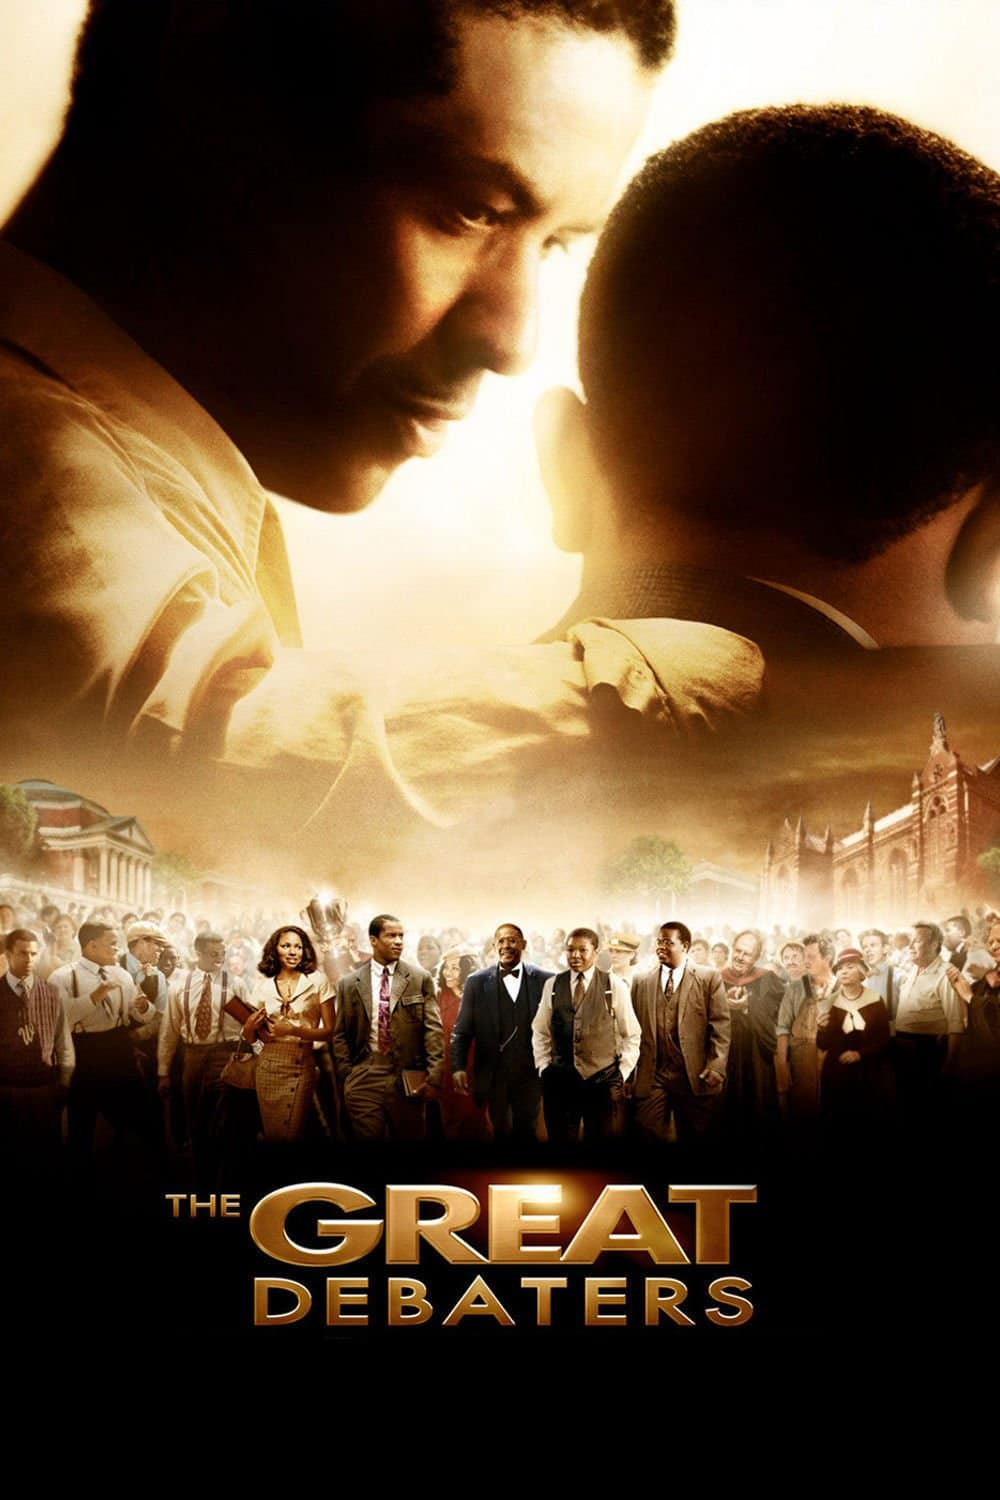 The Great Debaters, 2007